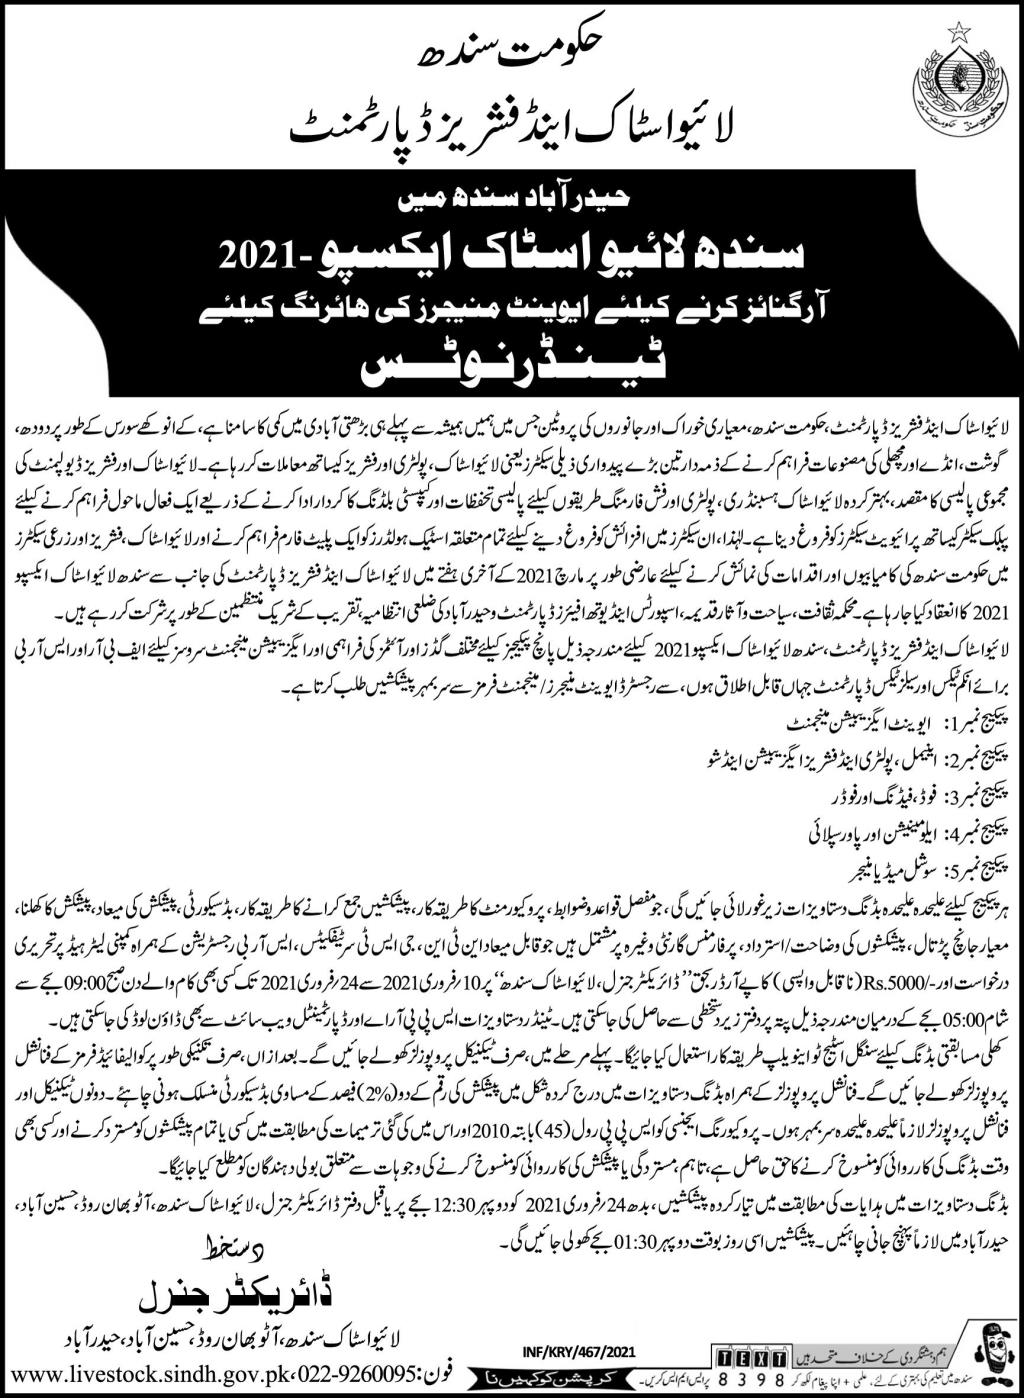 Livestock and Fisheries Department Hyderabad Sindh Jobs 2021